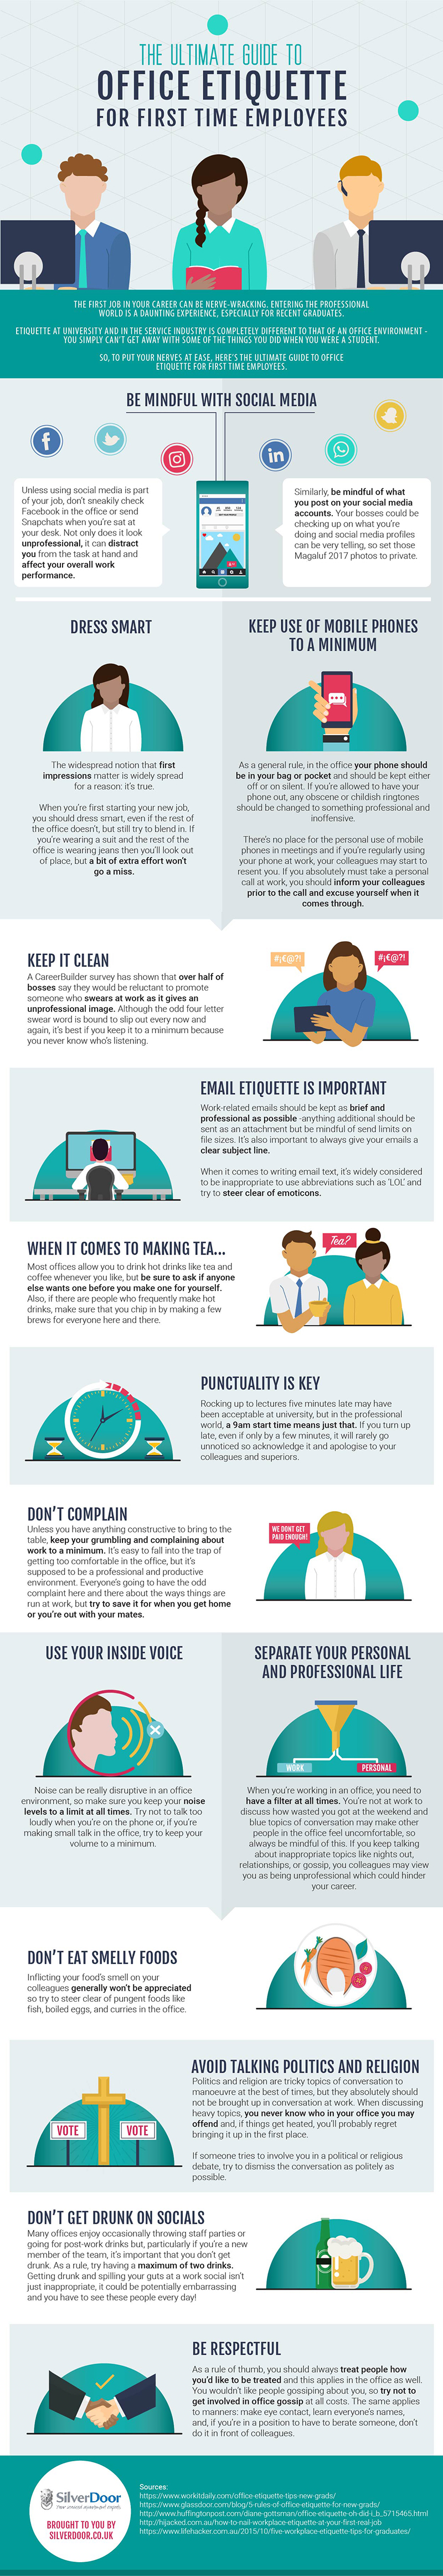 The Ultimate Guide To Office Etiquette For First Time Employees [Infographic]